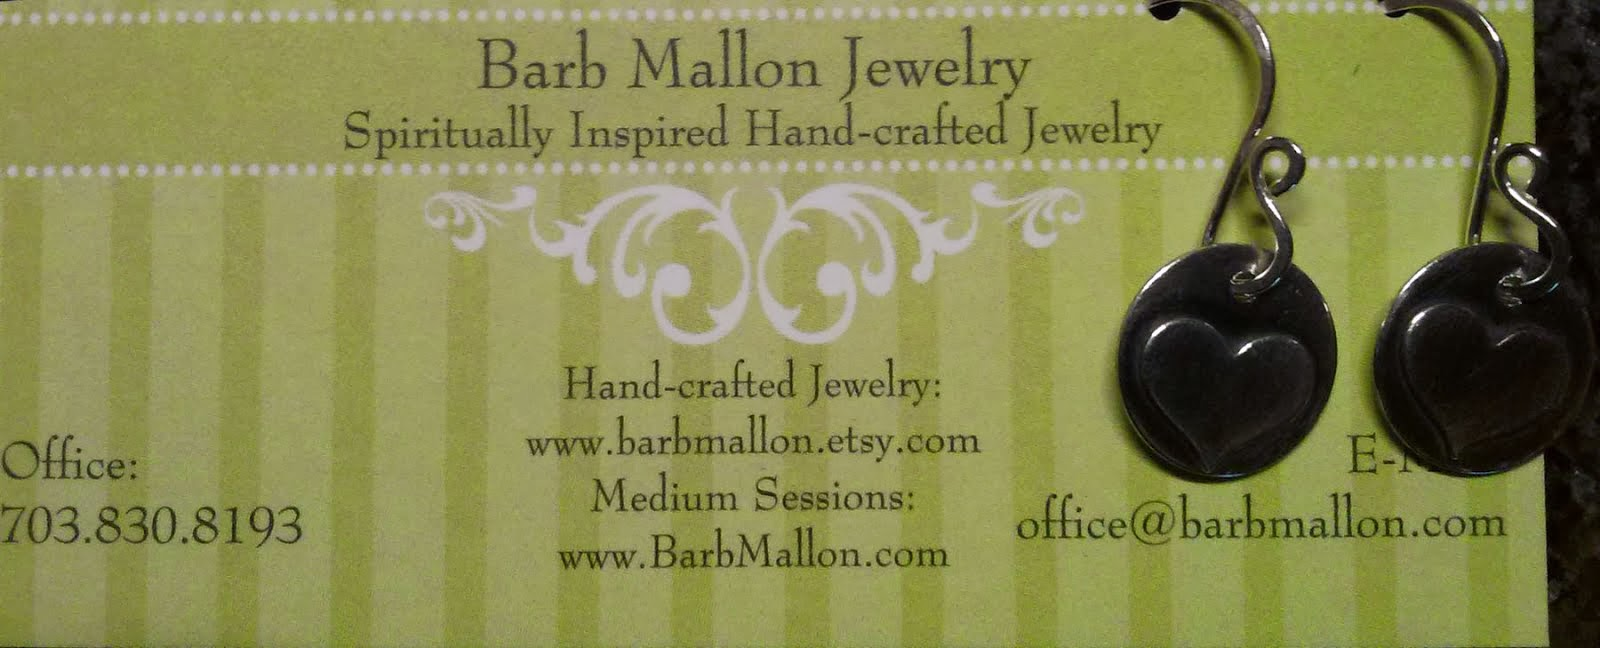 Check out Handmade Jewelry by Barb Mallon!